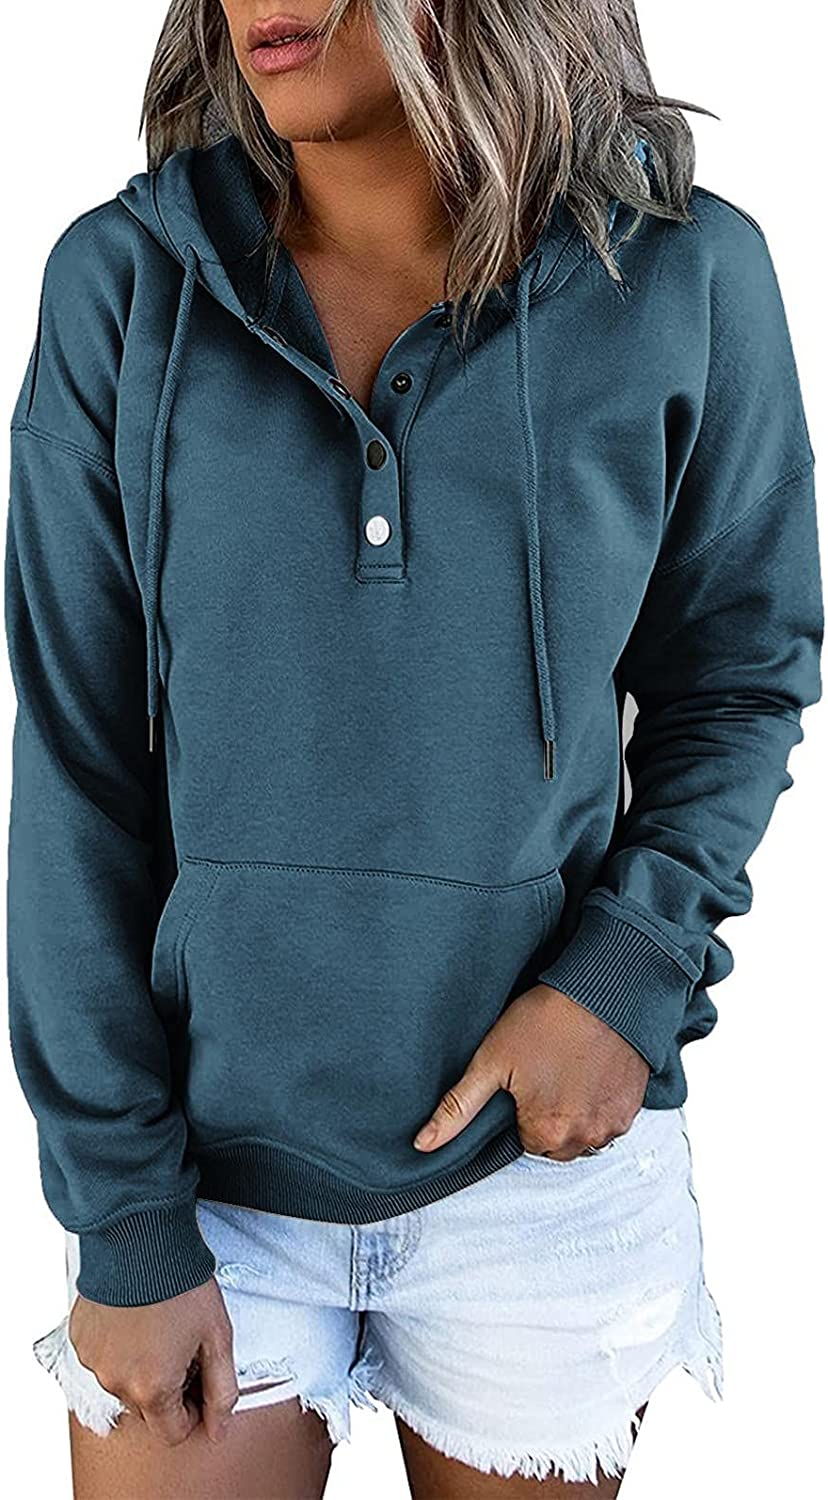 COMVALUE Womens Hoodies,Button Down Hoodies Drawstring Pullover Hooded Long Sleeve V Neck Sweatshirts with Pocket